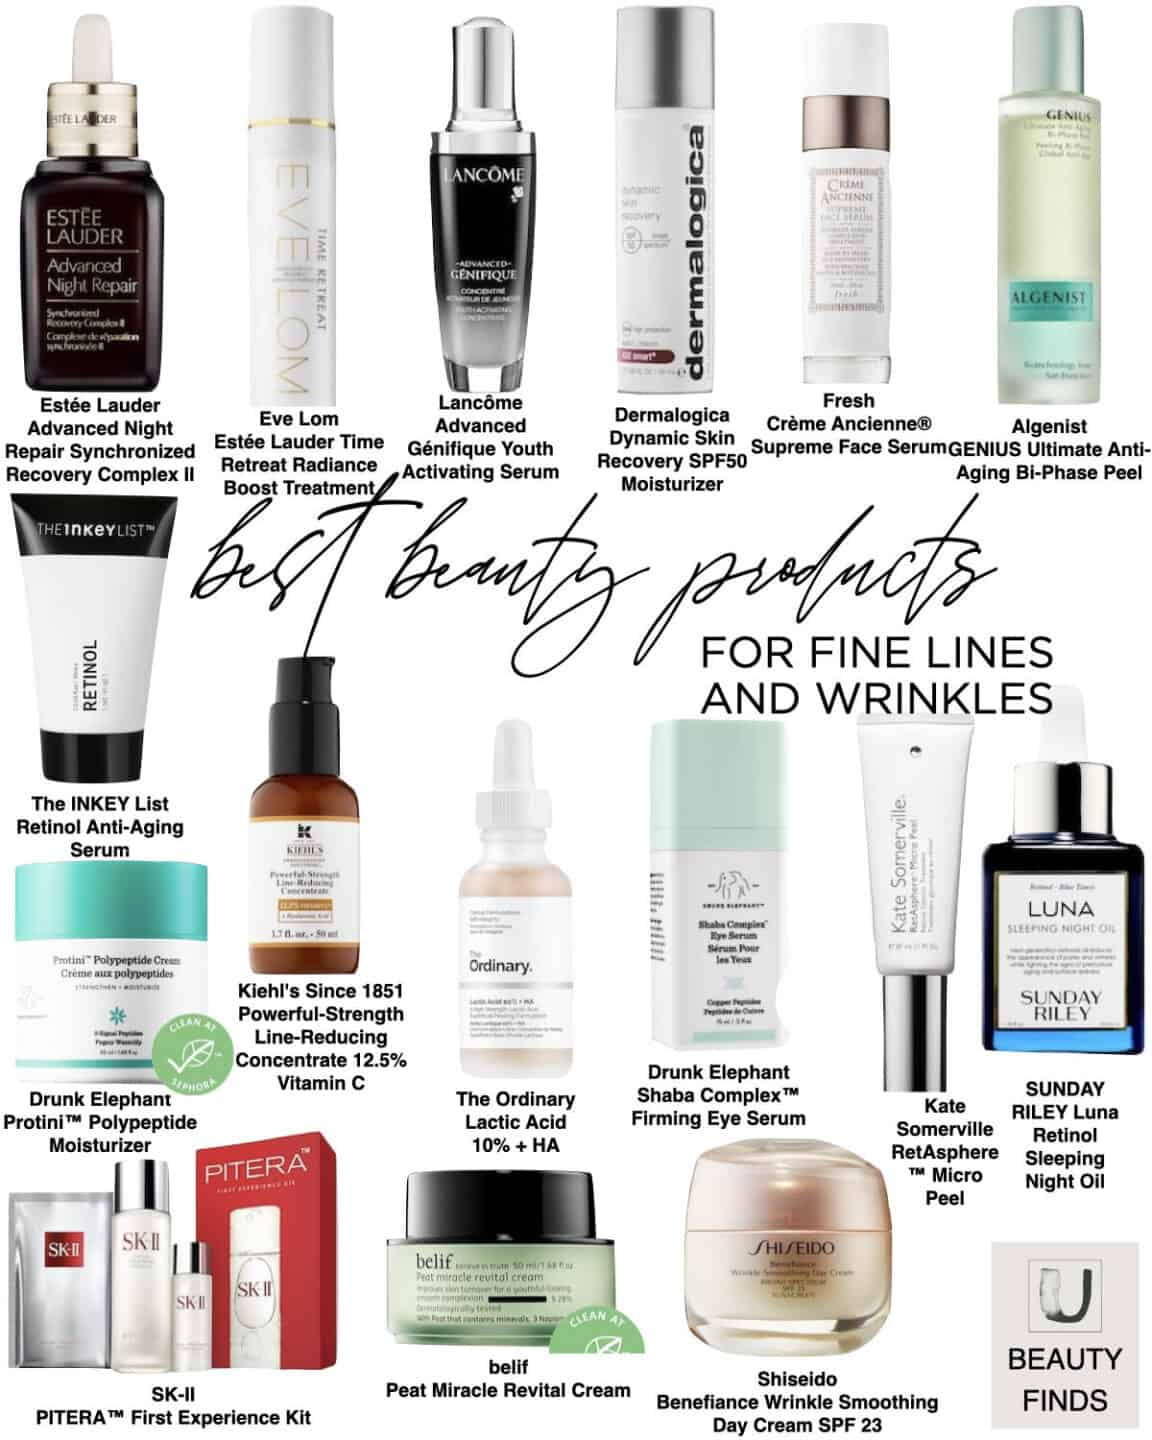 Skincare Best Sellers for Fine Lines and Wrinkles